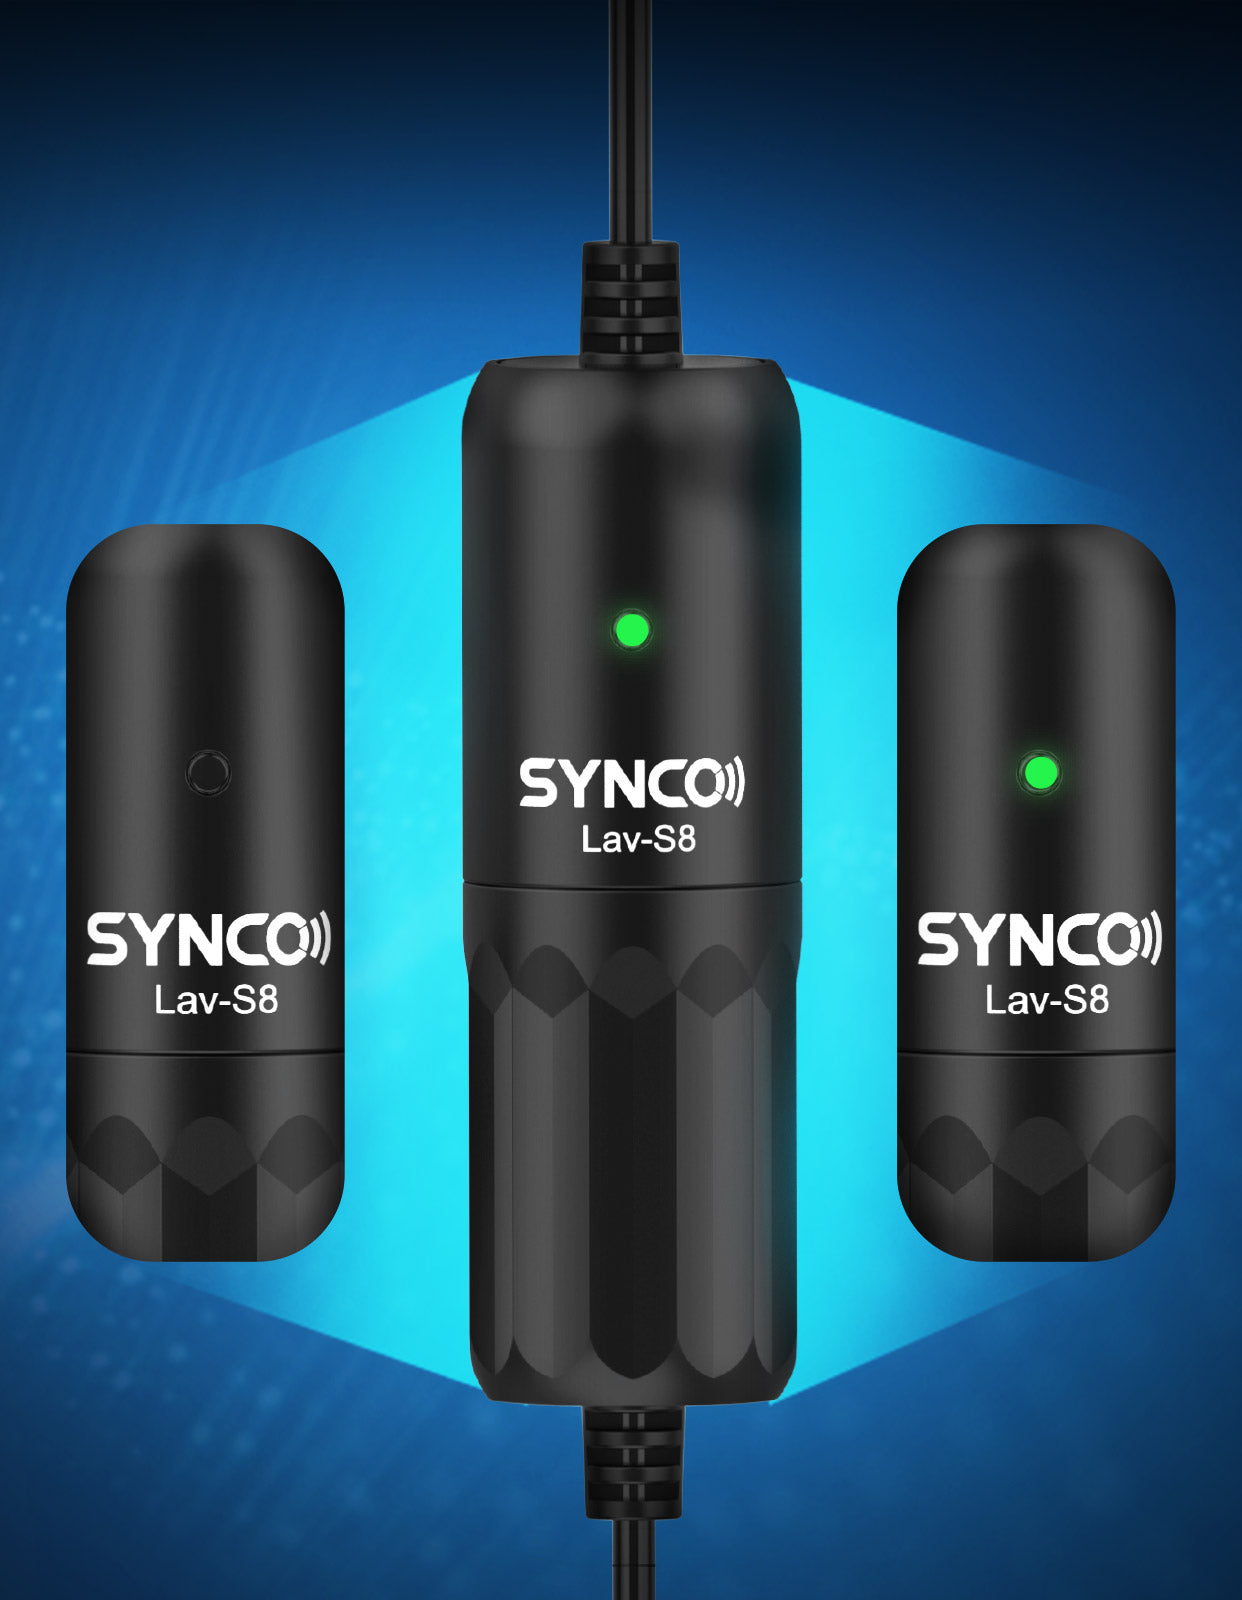 SYNCO Lav-S8 Working Condition Indicator